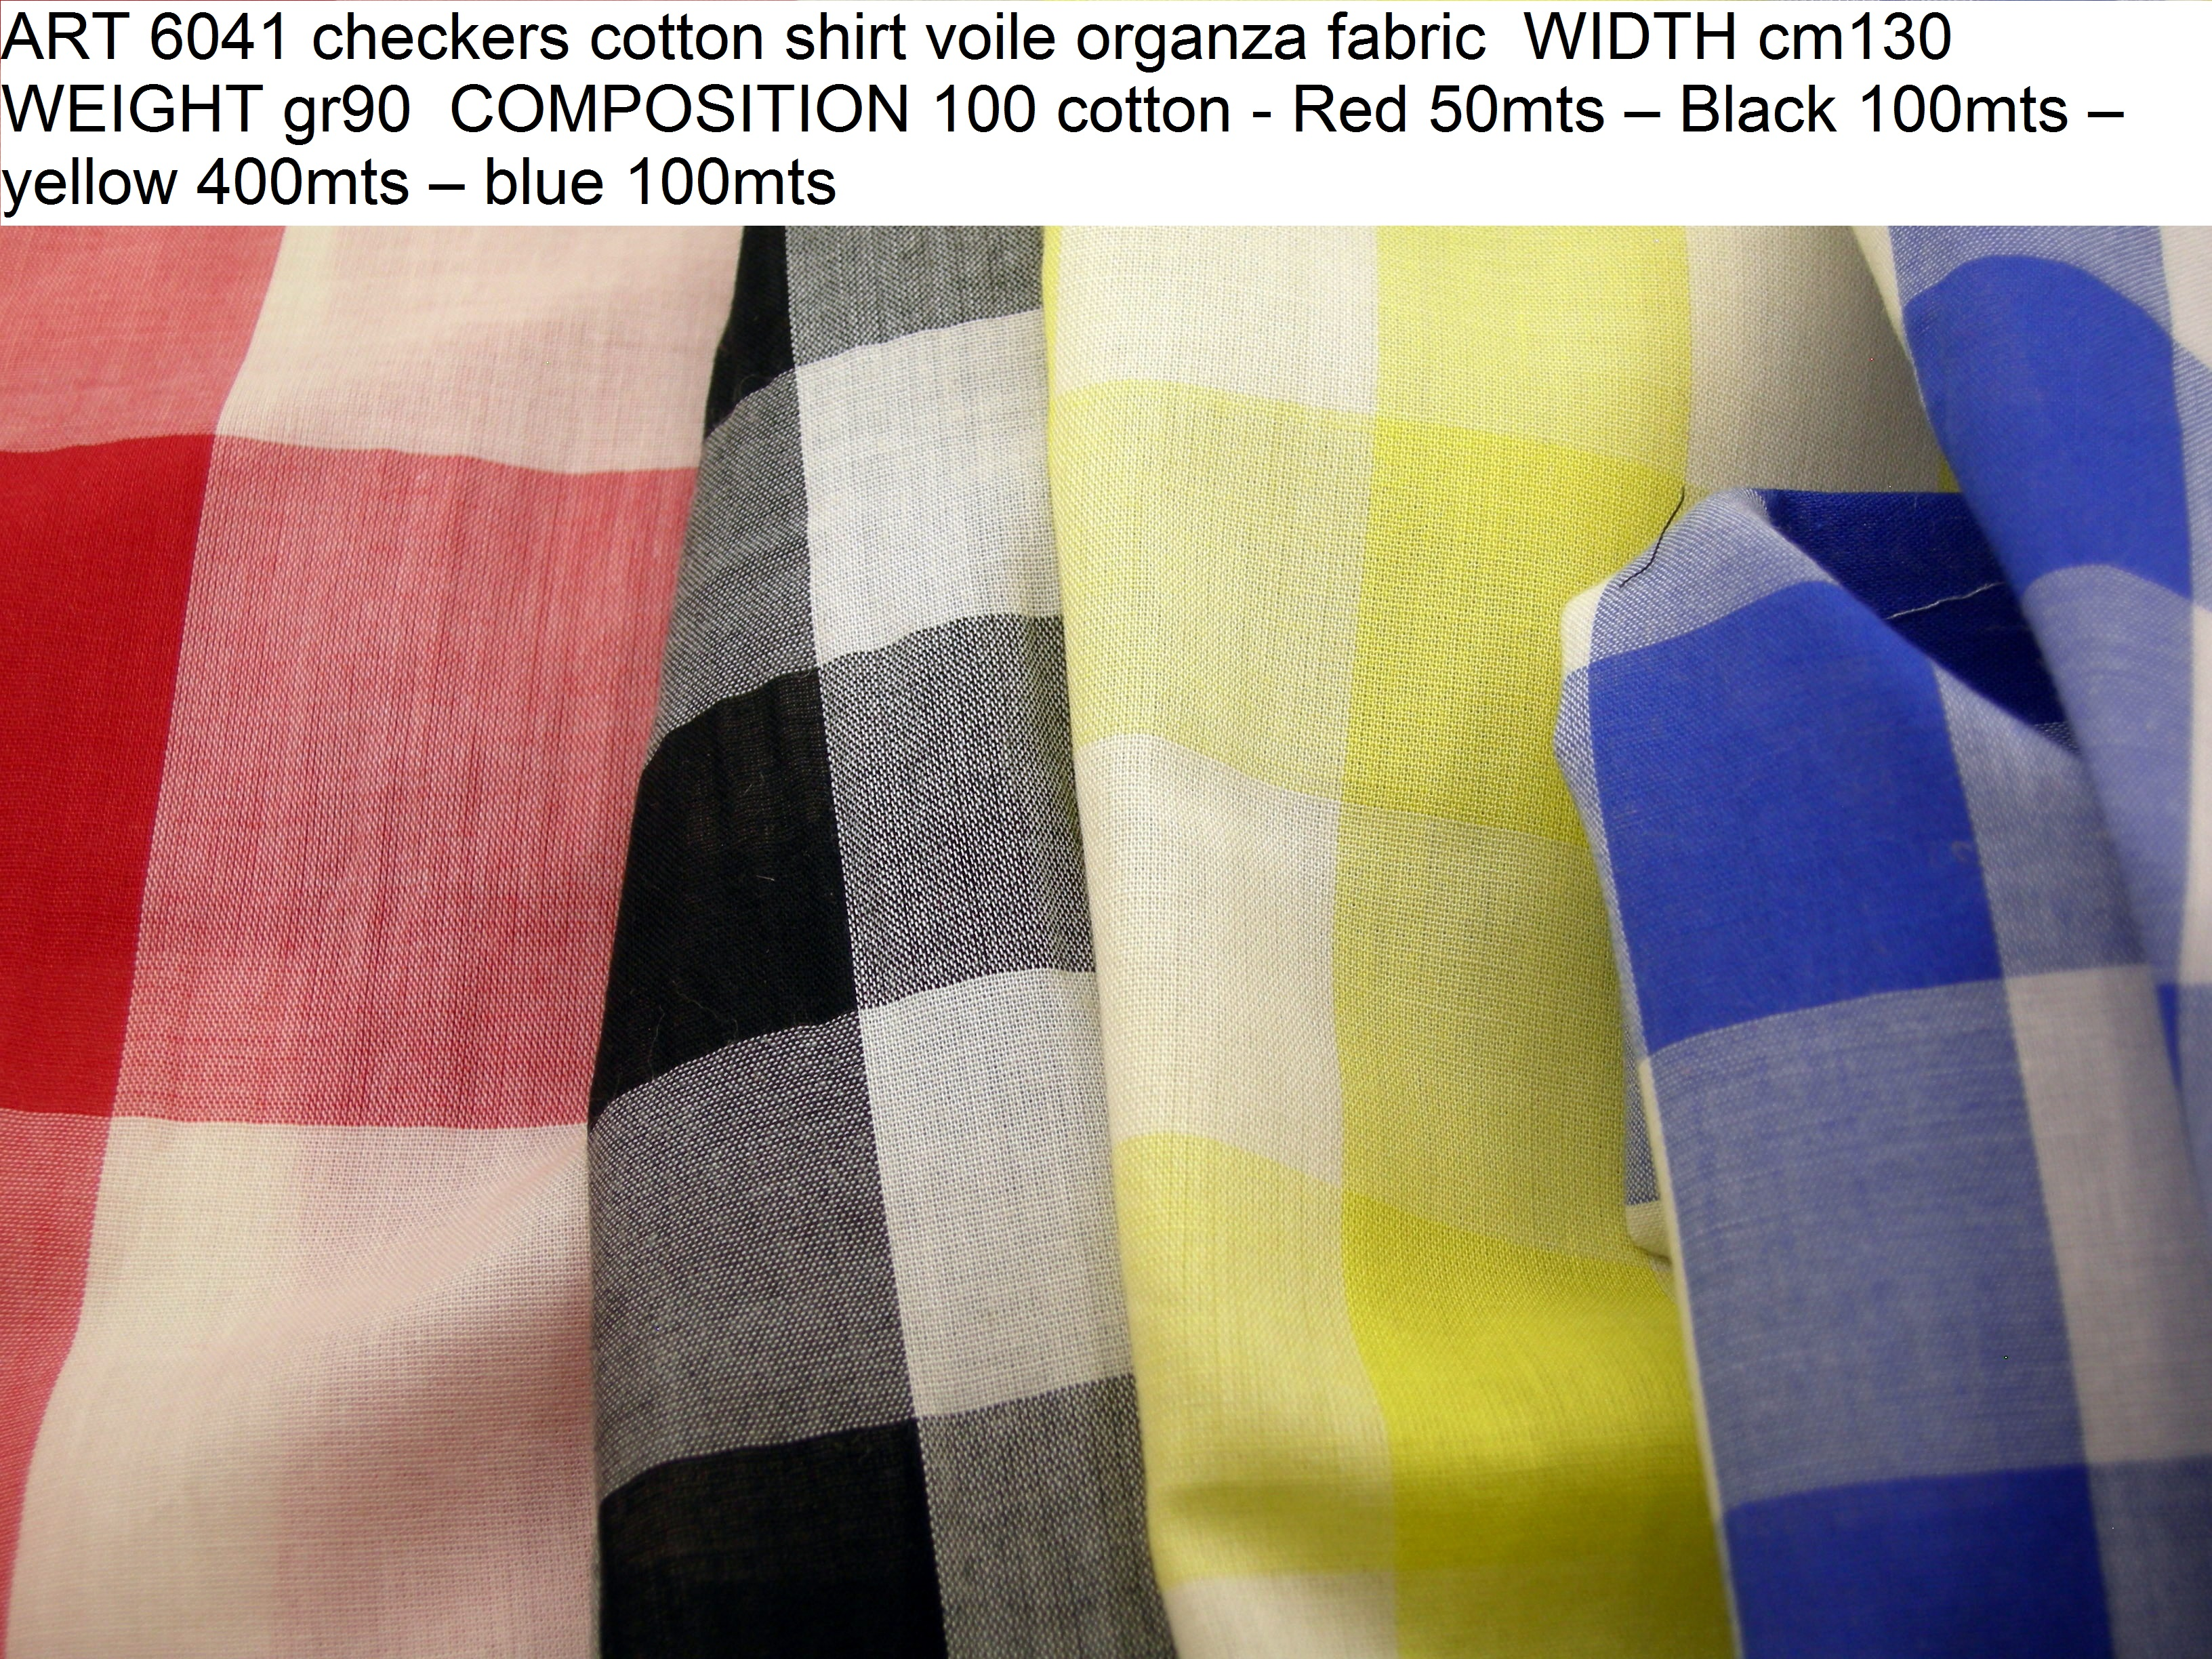 ART 6041 checkers cotton shirt voile organza fabric WIDTH cm130 WEIGHT gr90 COMPOSITION 100 cotton - Red 50mts – Black 100mts – yellow 400mts – blue 100mts